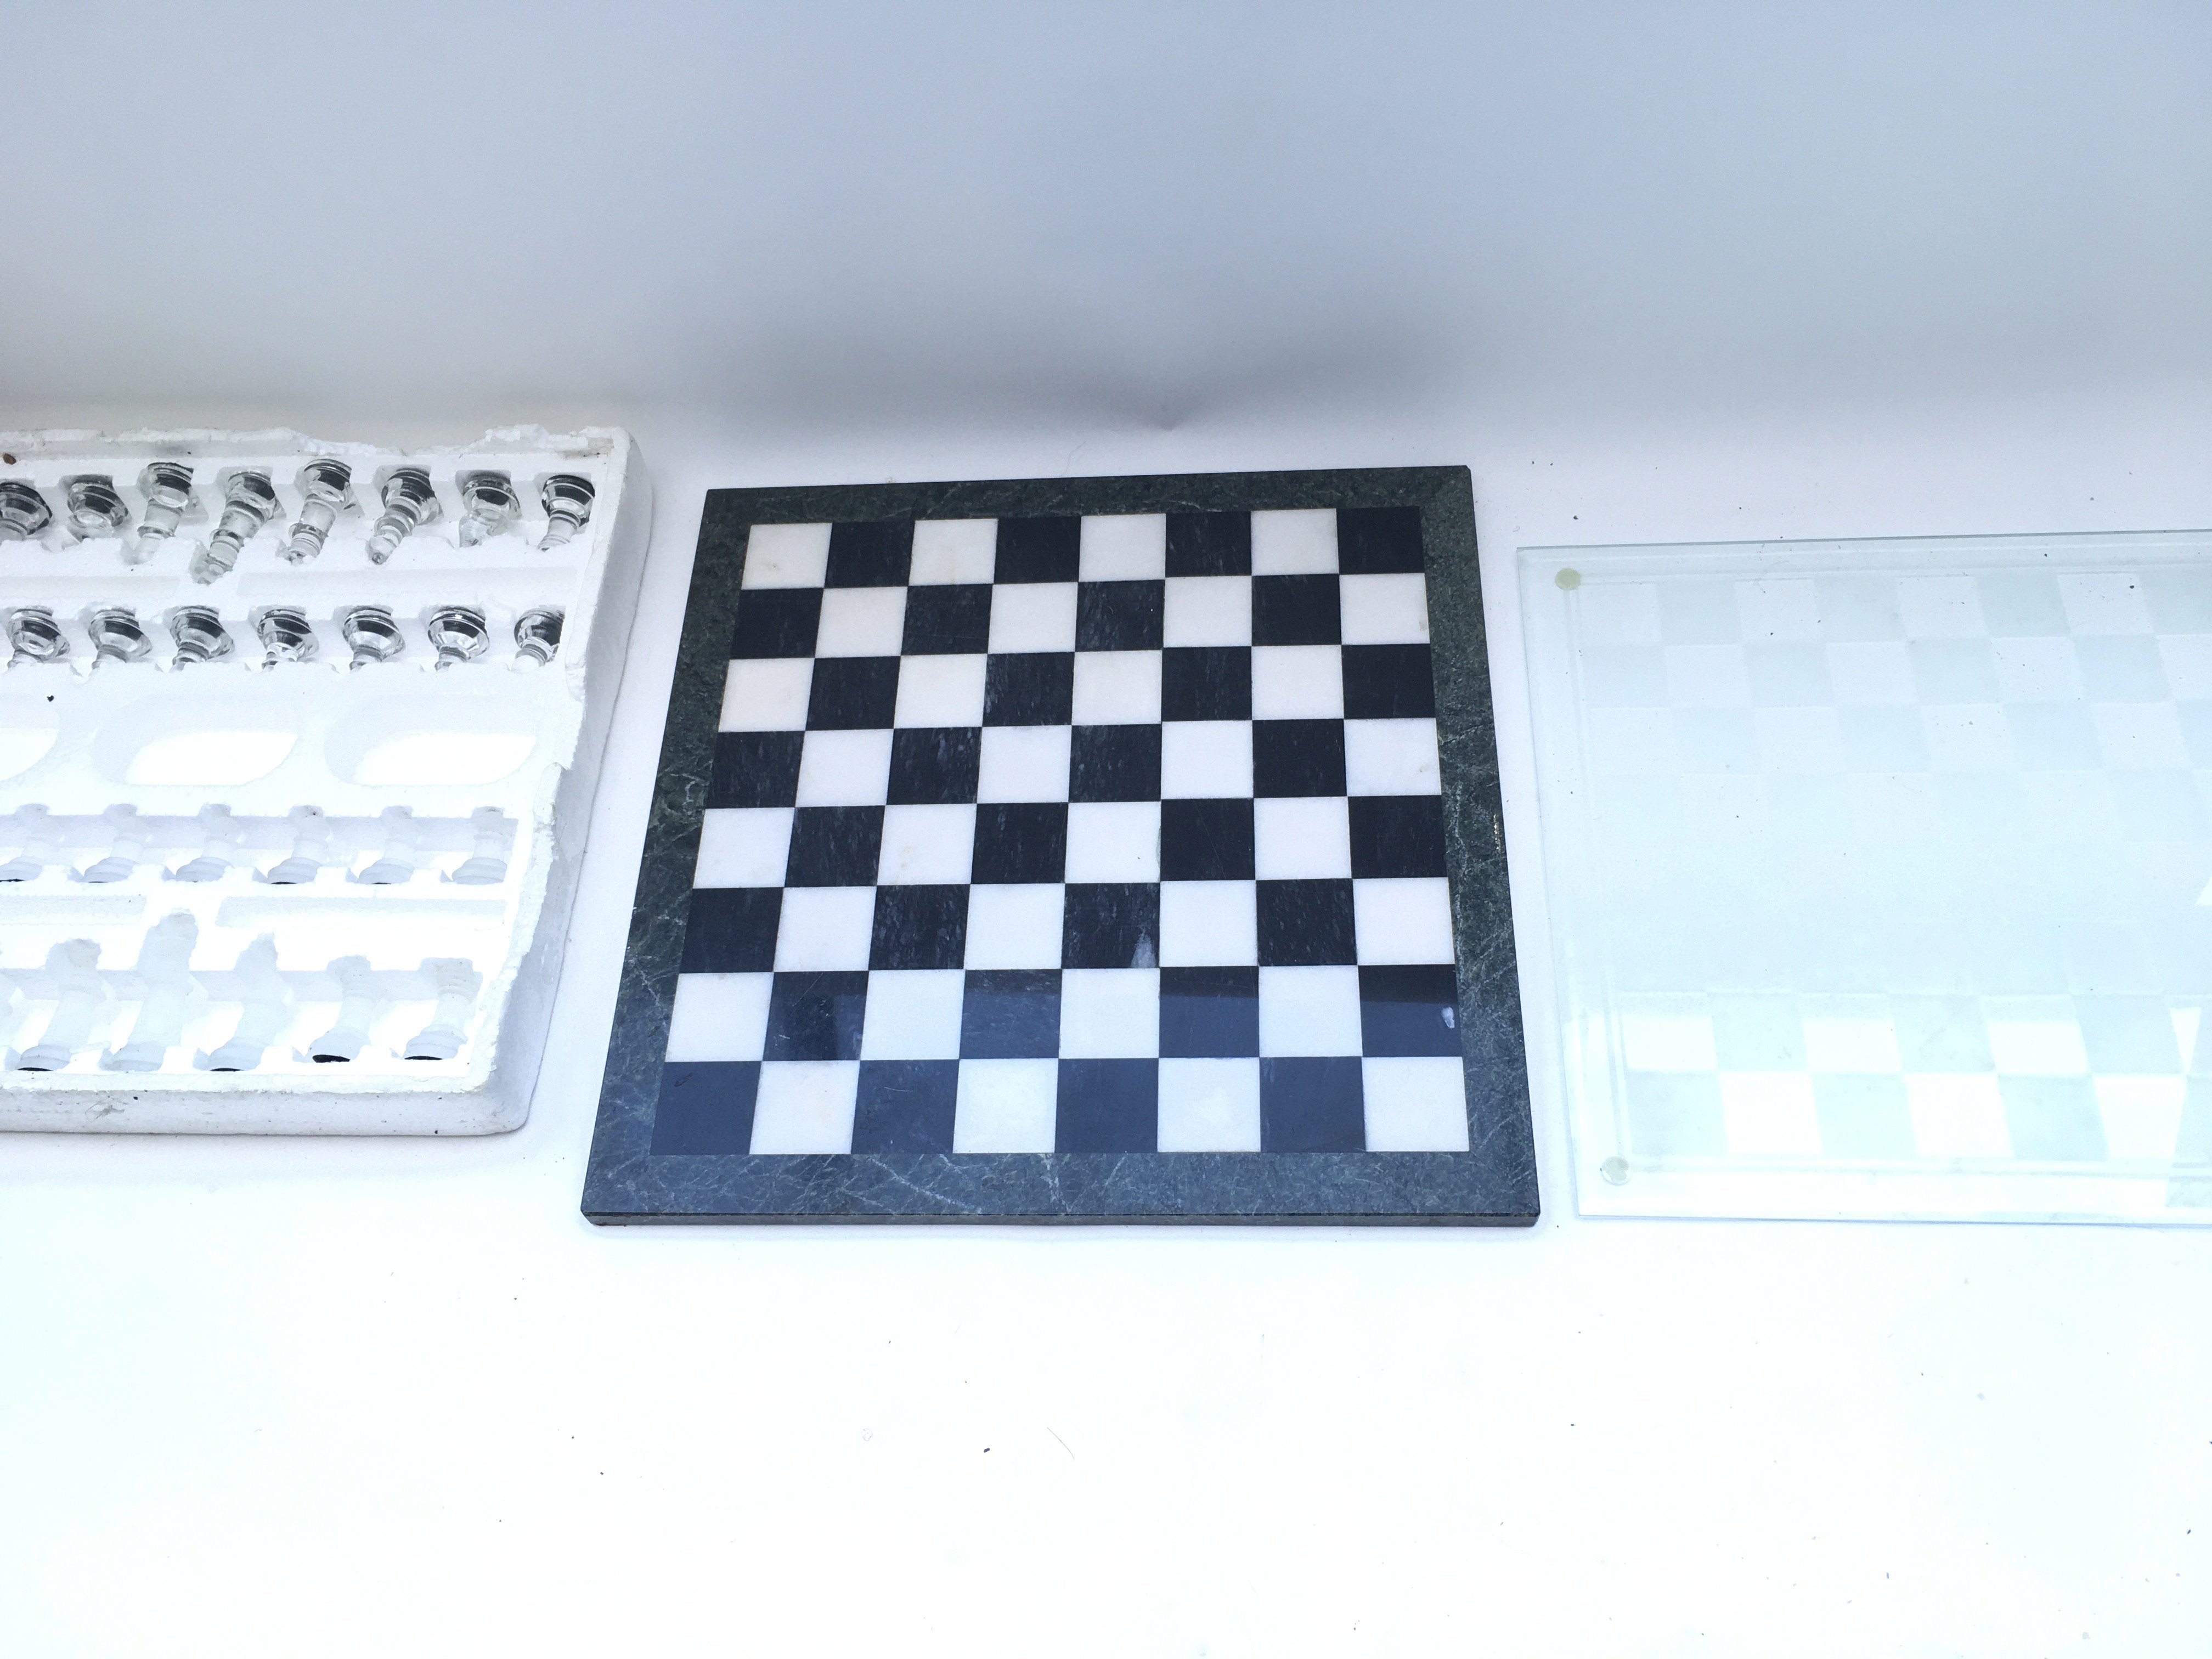 Chess set with two boards. One glass and one stone.